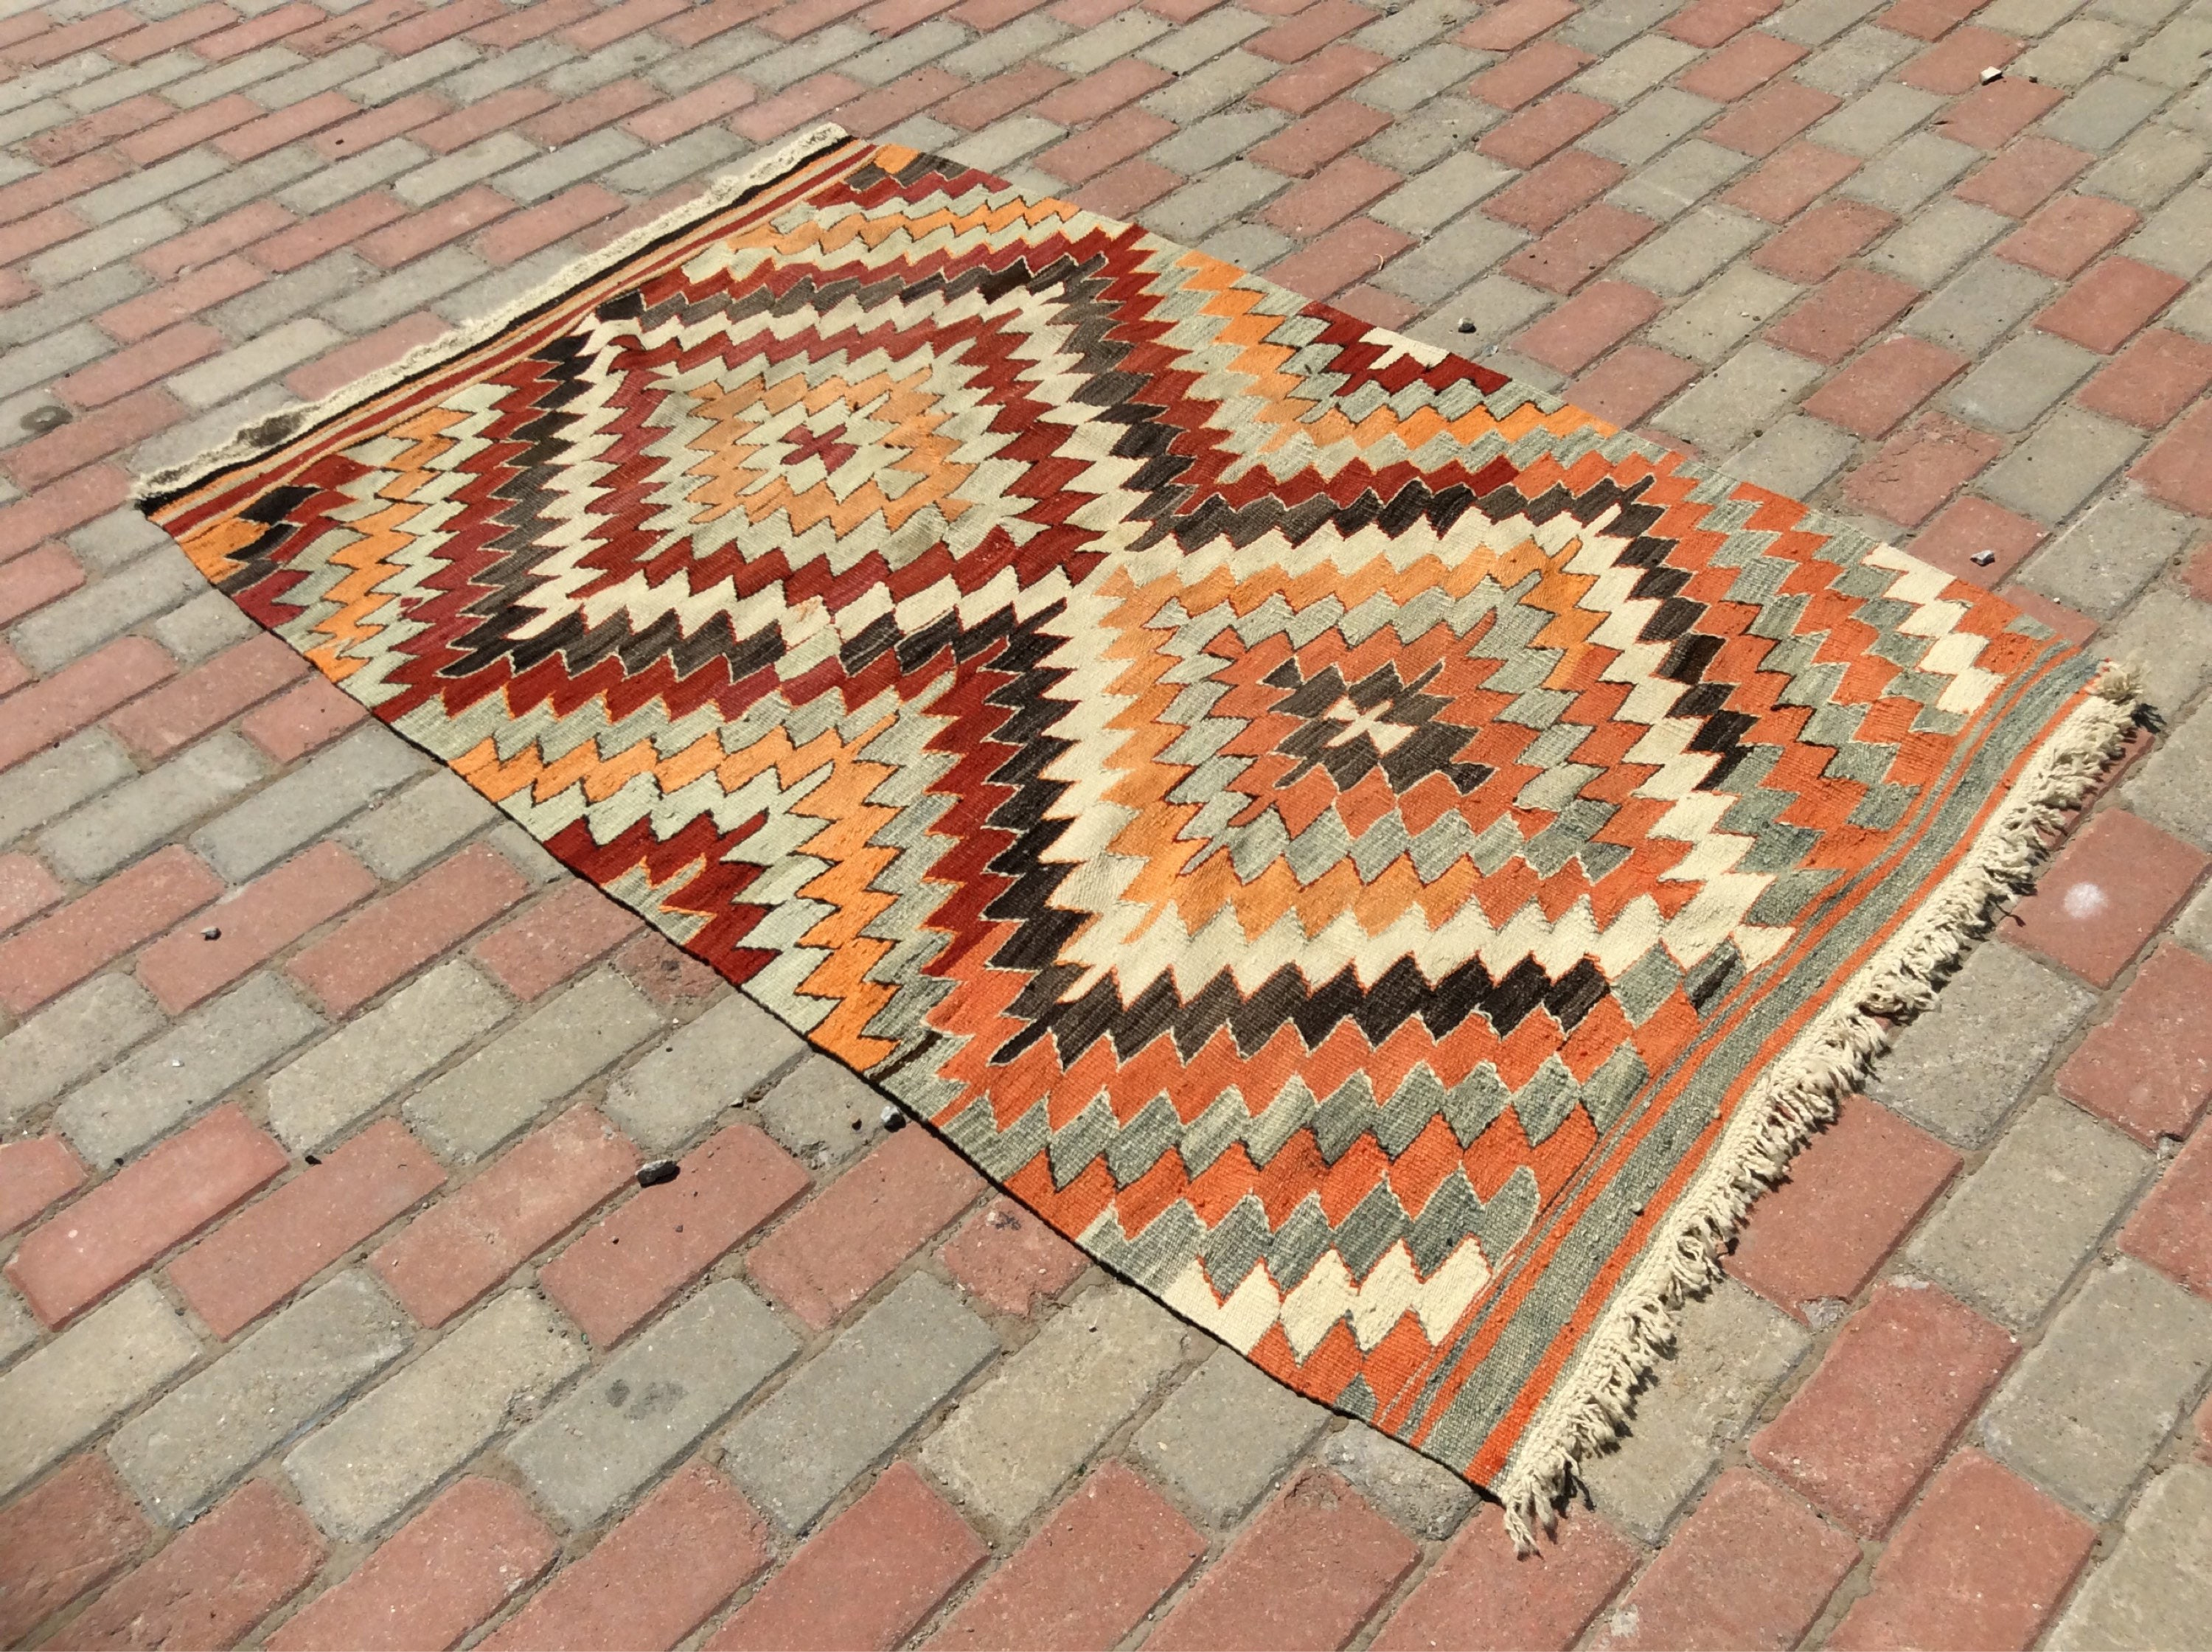 designer products bc morris rugs artichoke wool rug wil bohemian viscose thyme co of beauty